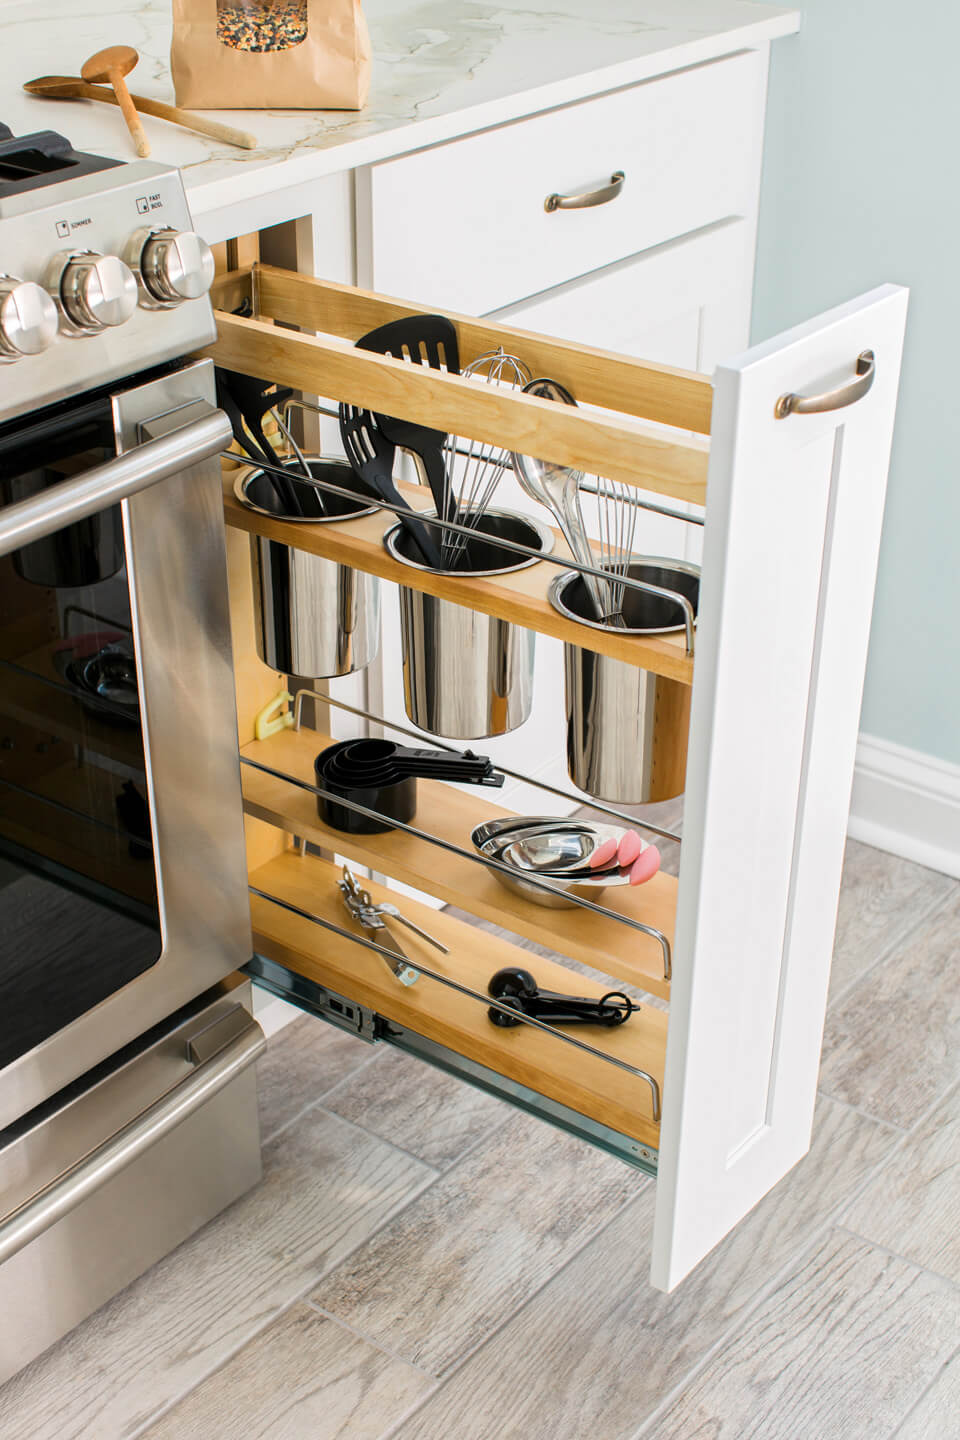 kitchen organisers storage 35 best small kitchen storage organization ideas and 2352